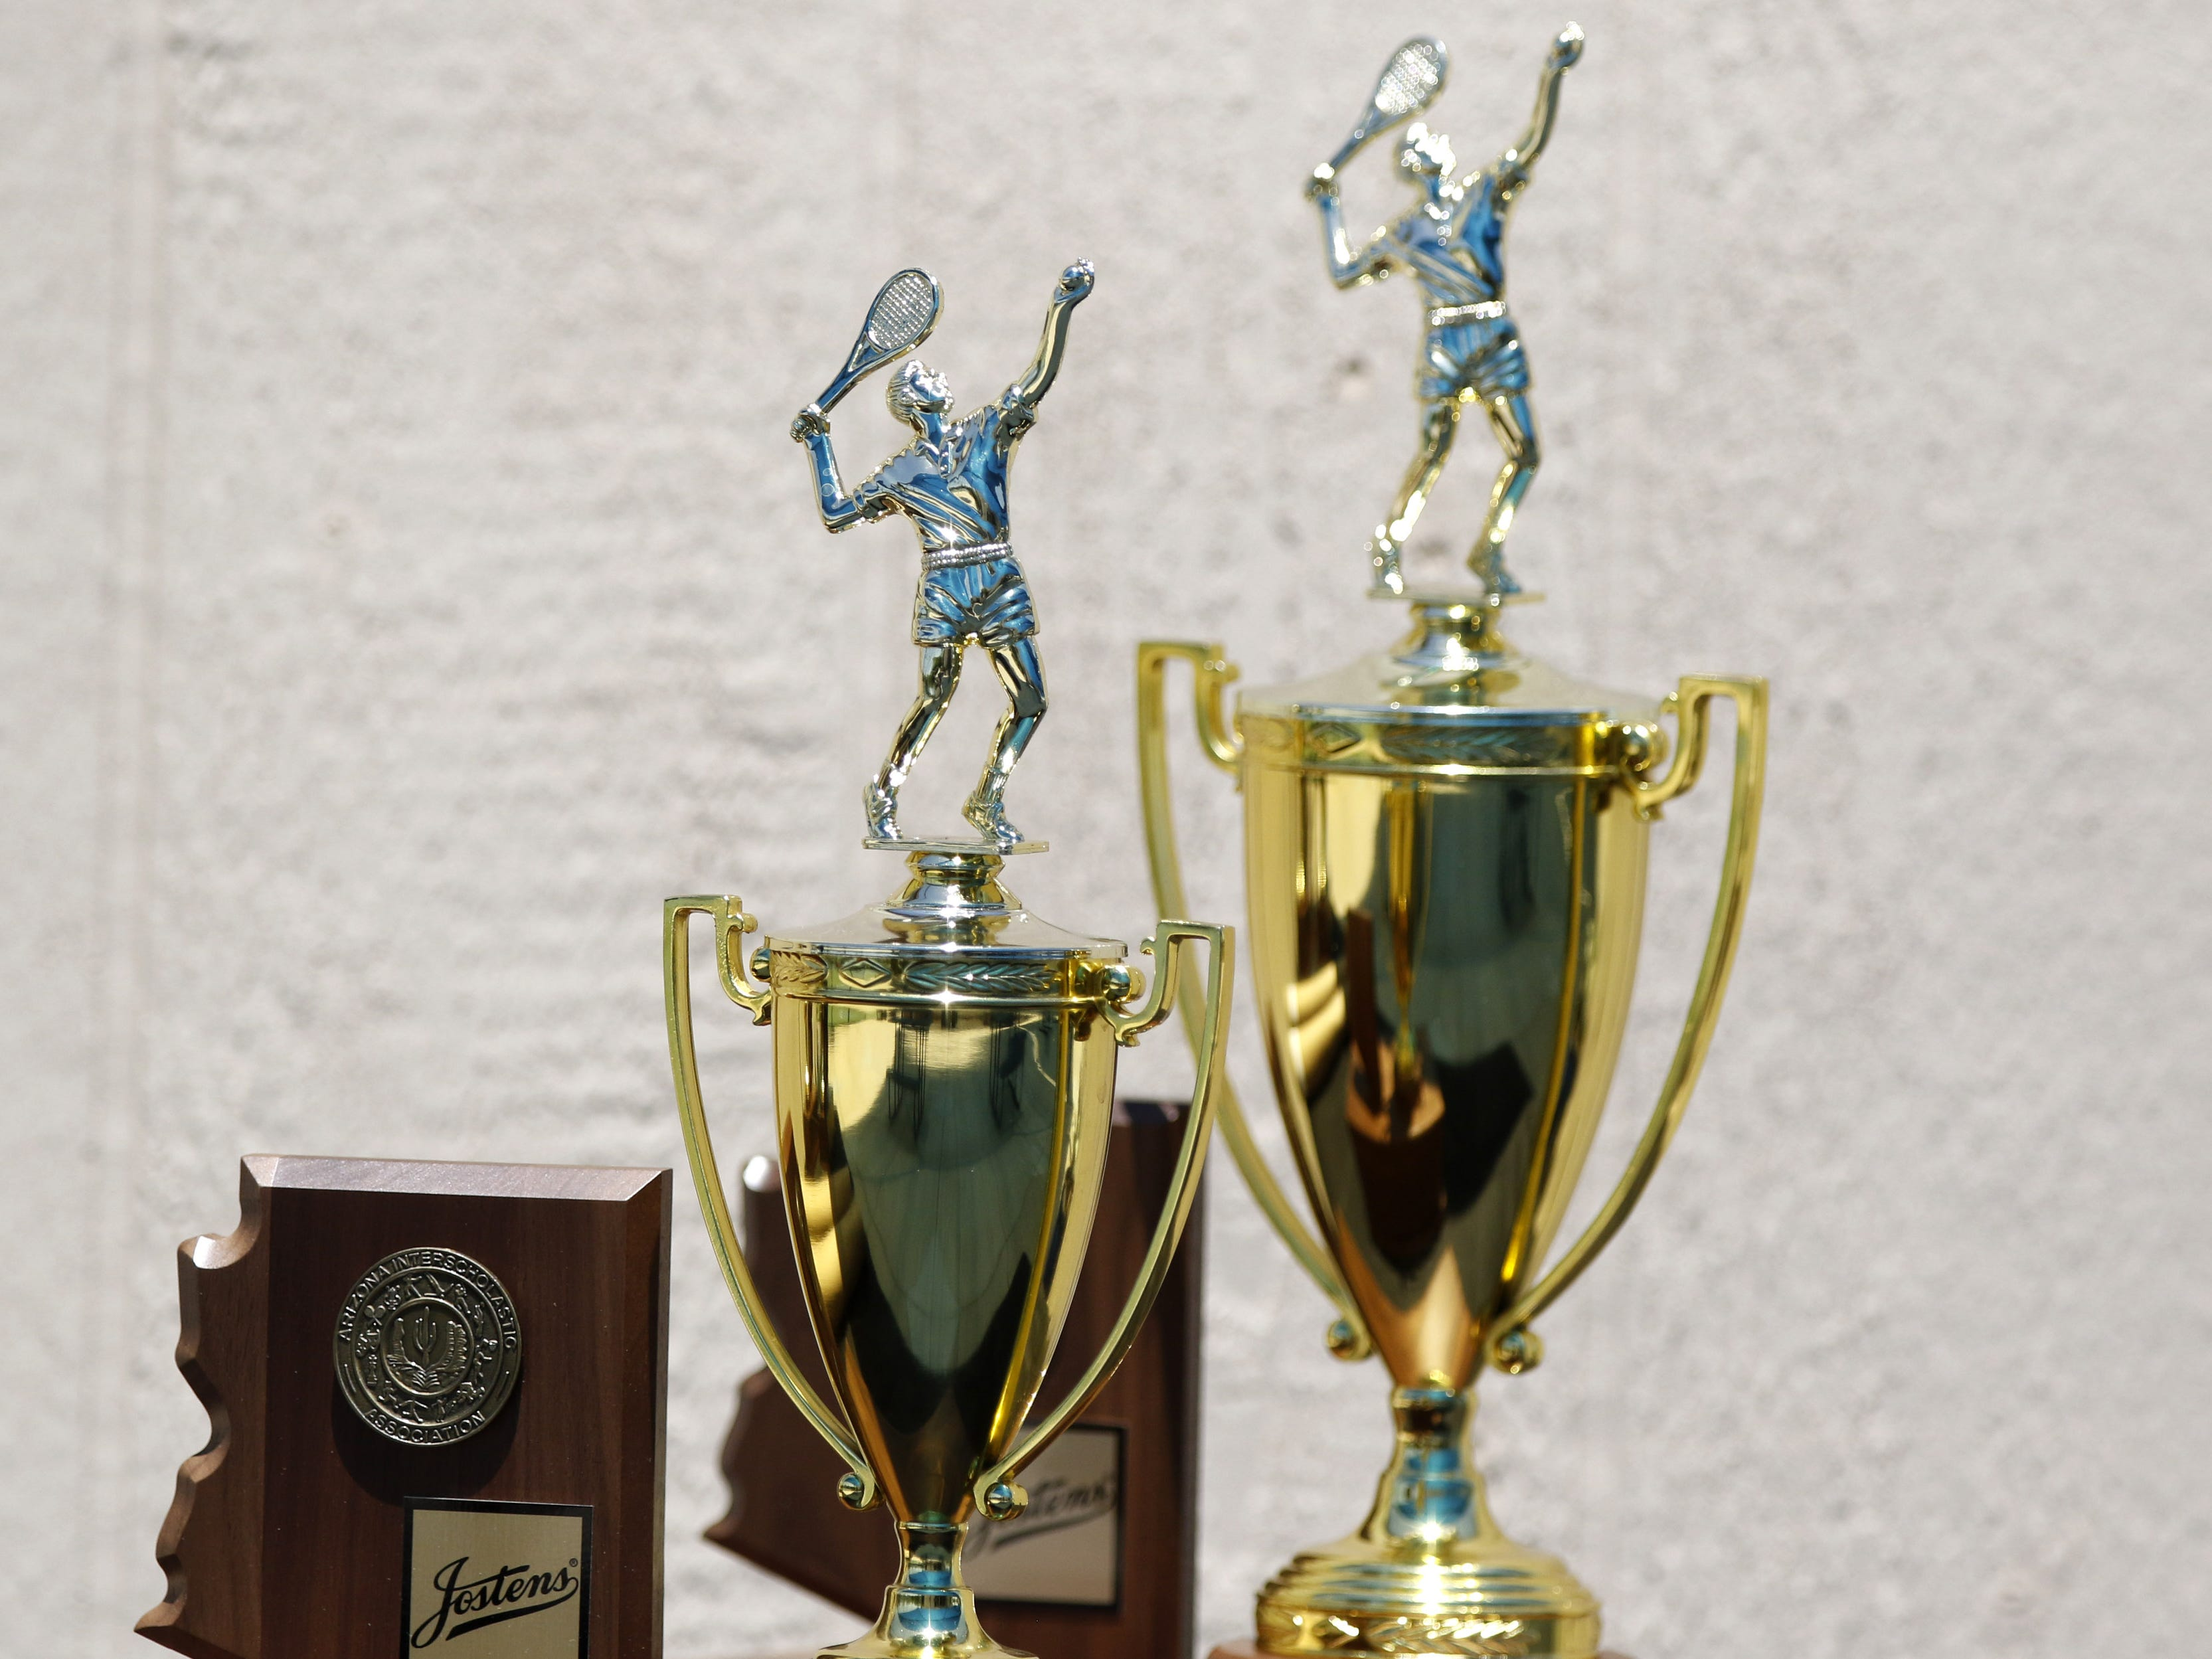 Division III tennis team state championship trophies in Glendale, Arizona, May 04, 2019.